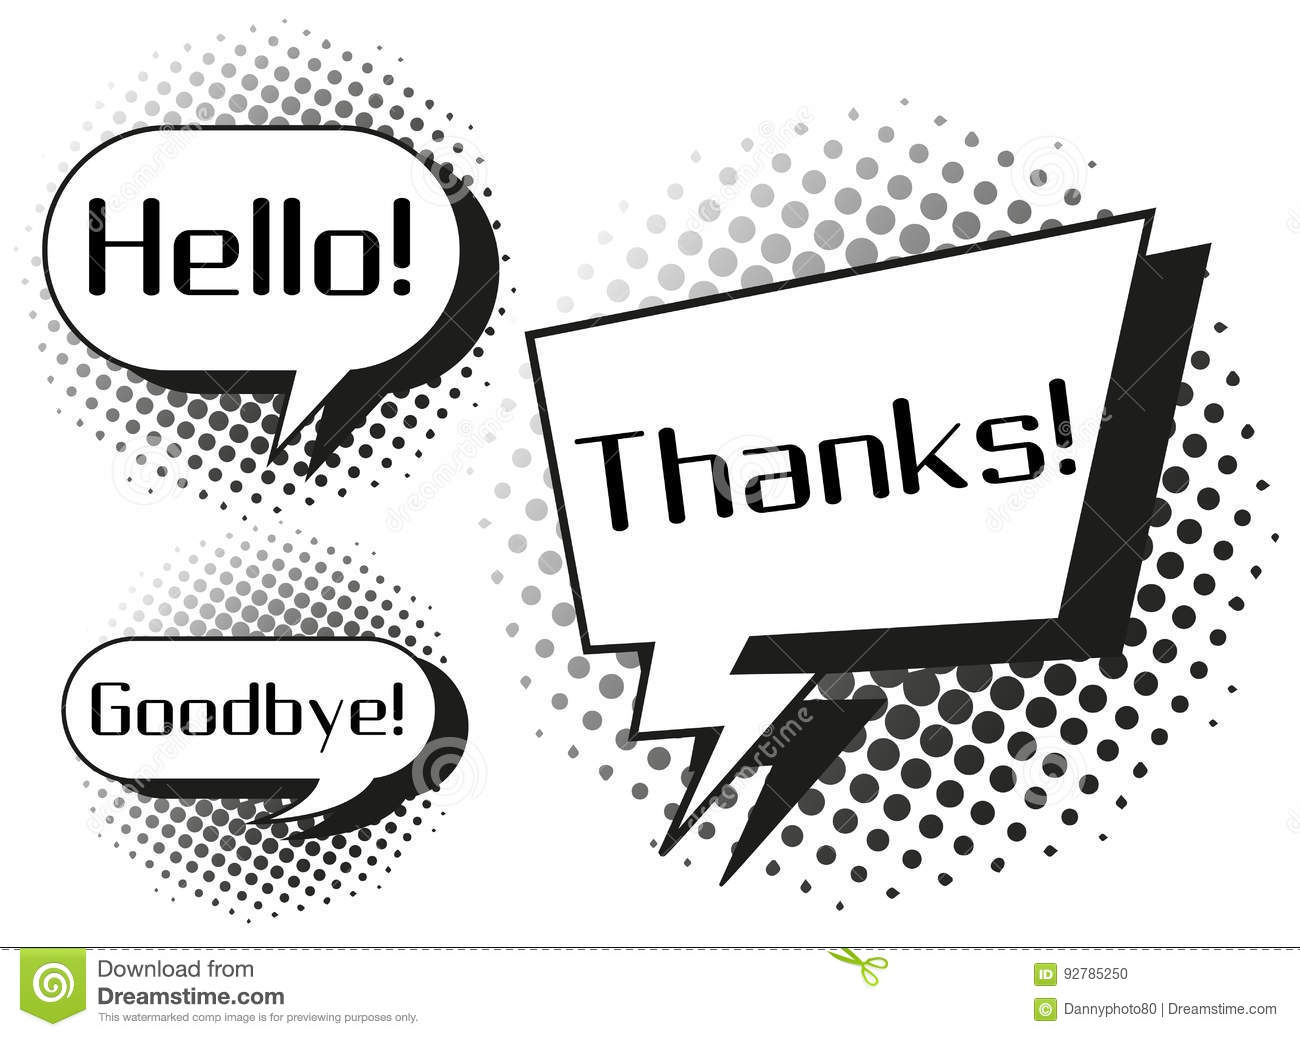 Goodbye Cartoons Illustrations Amp Vector Stock Images